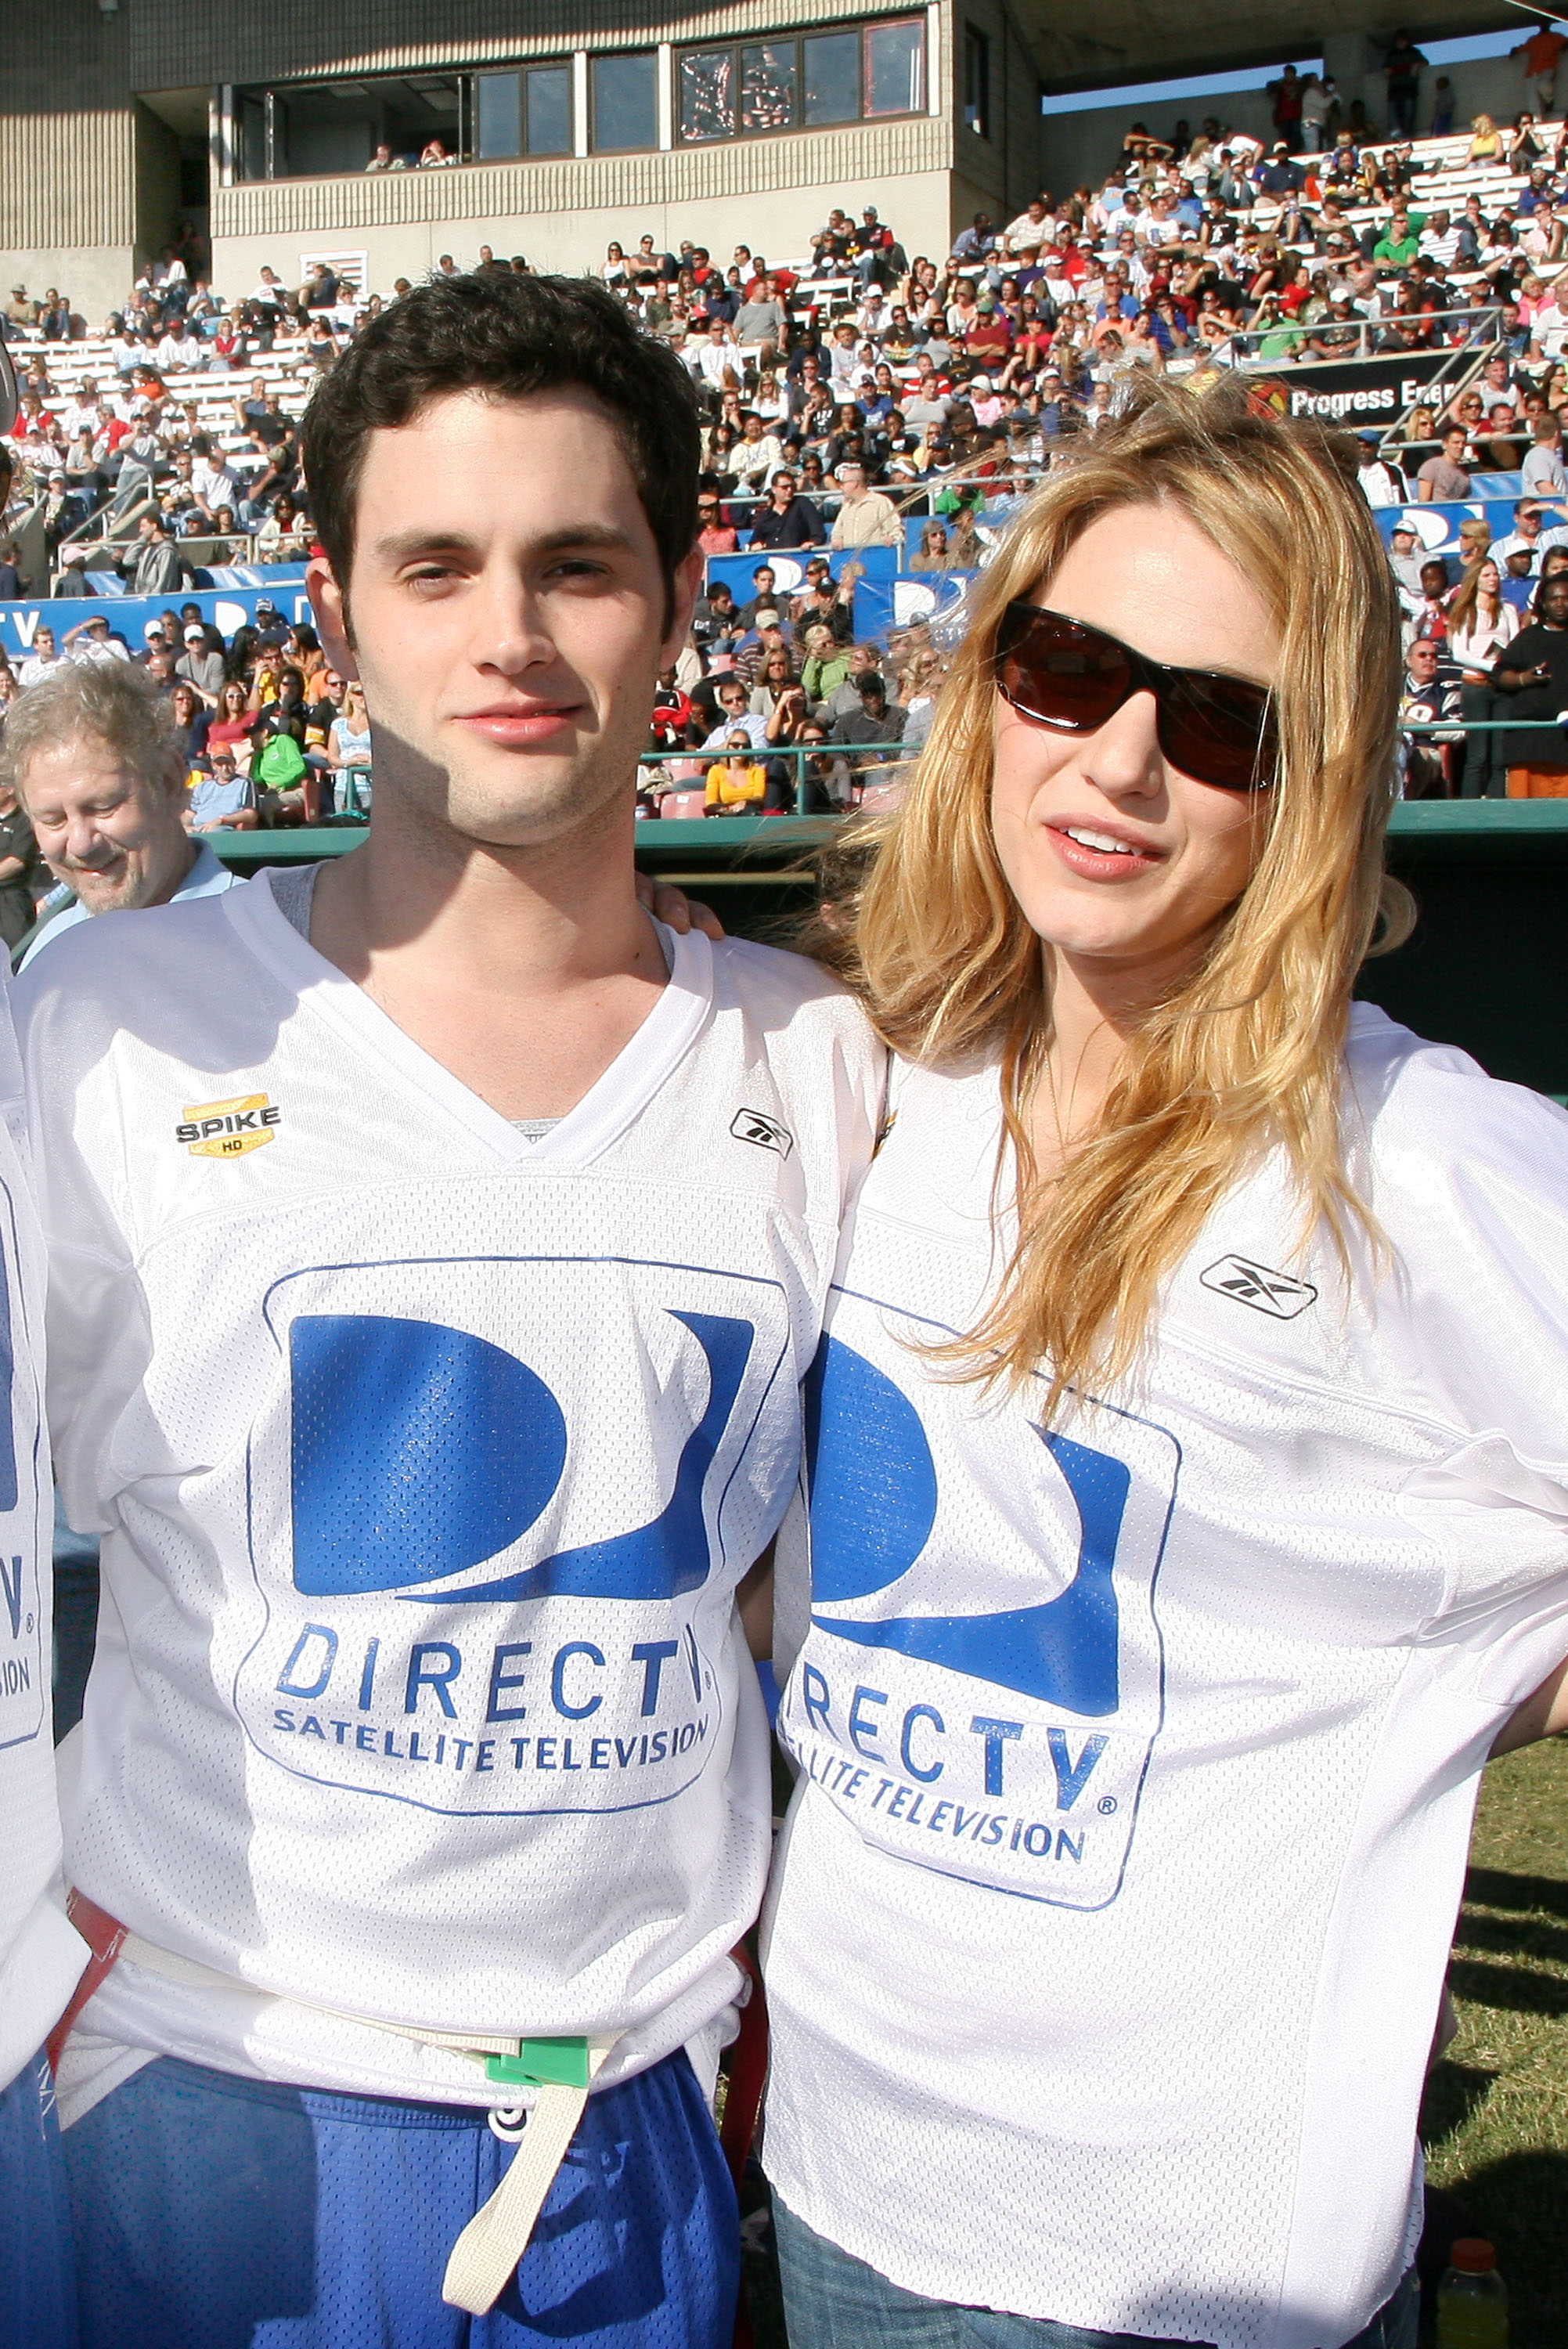 Blake Lively and Penn Badgley buddied up at DirecTV's third annual Celebrity Beach Bowl held in St. Petersburg, FL, in January 2009.